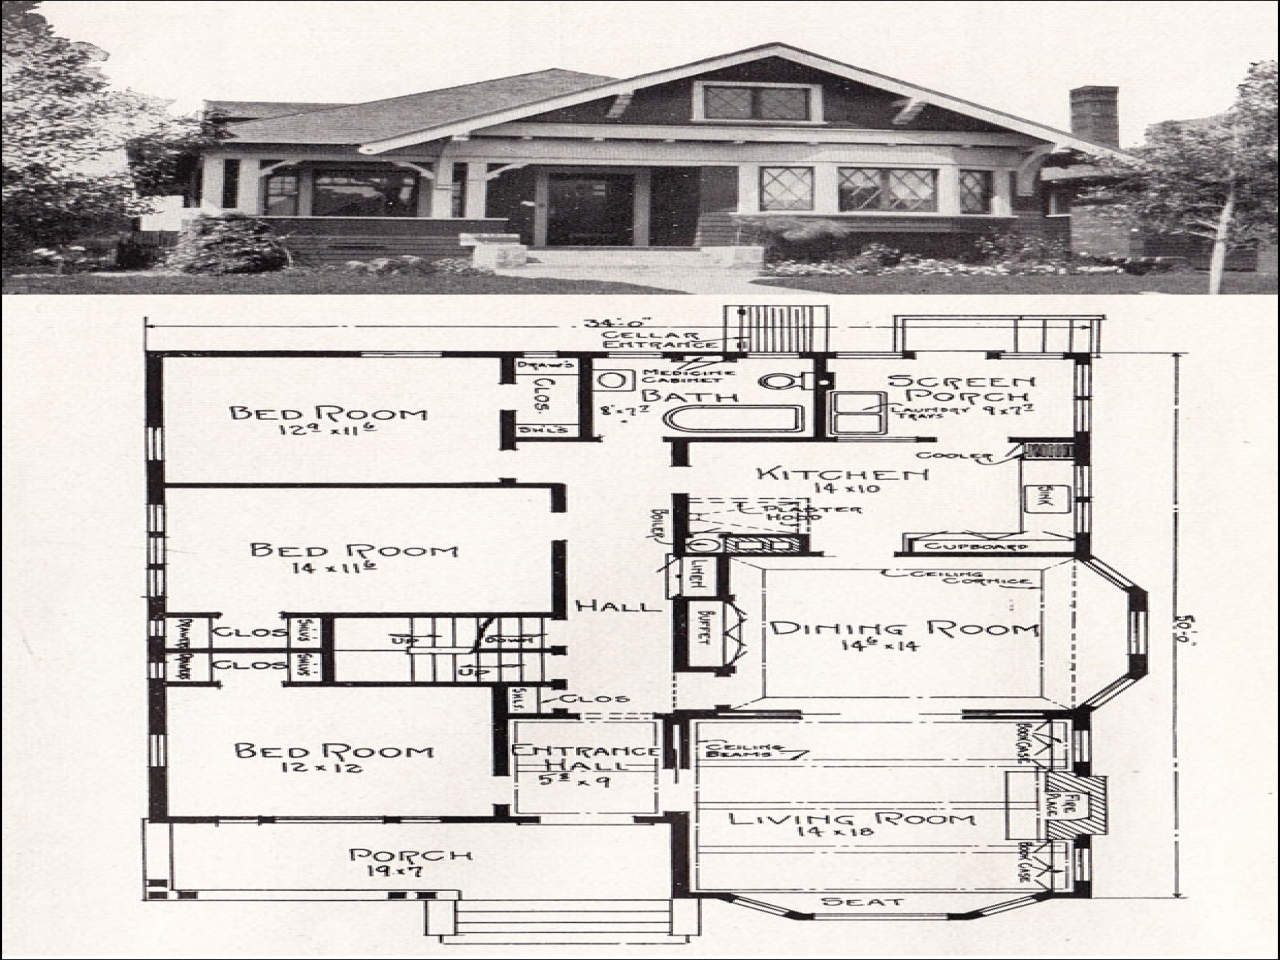 American bungalow floor plans vintage bungalow floor plans for Old bungalow house plans